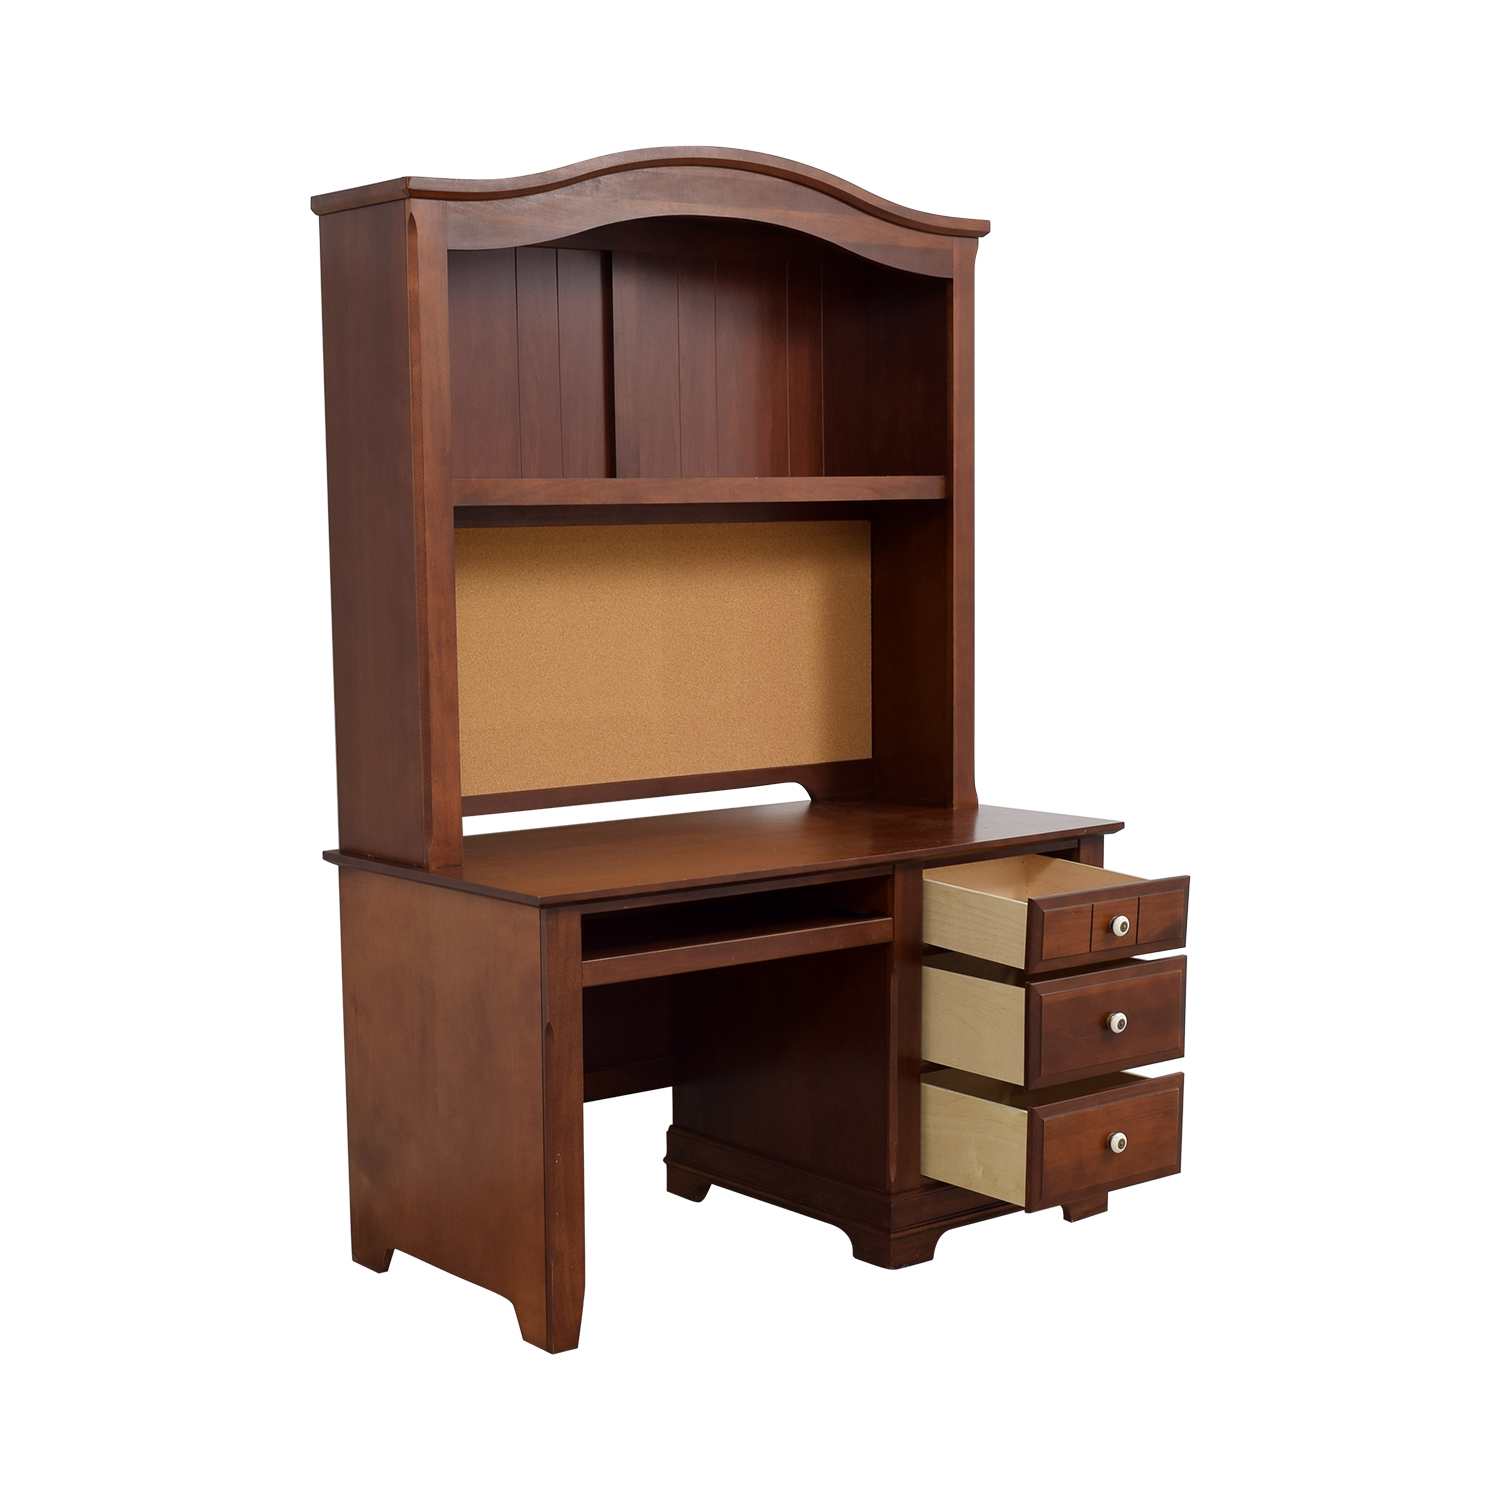 90% Off  Threedrawer Wood Desk With Curved Hutch And. Narrow End Table. Table Top Gas Grill. Wayne Help Desk. Straight Office Desk. Small Reception Desk Ideas. George Costanza Desk Bed. Chess Table. Couch Tables